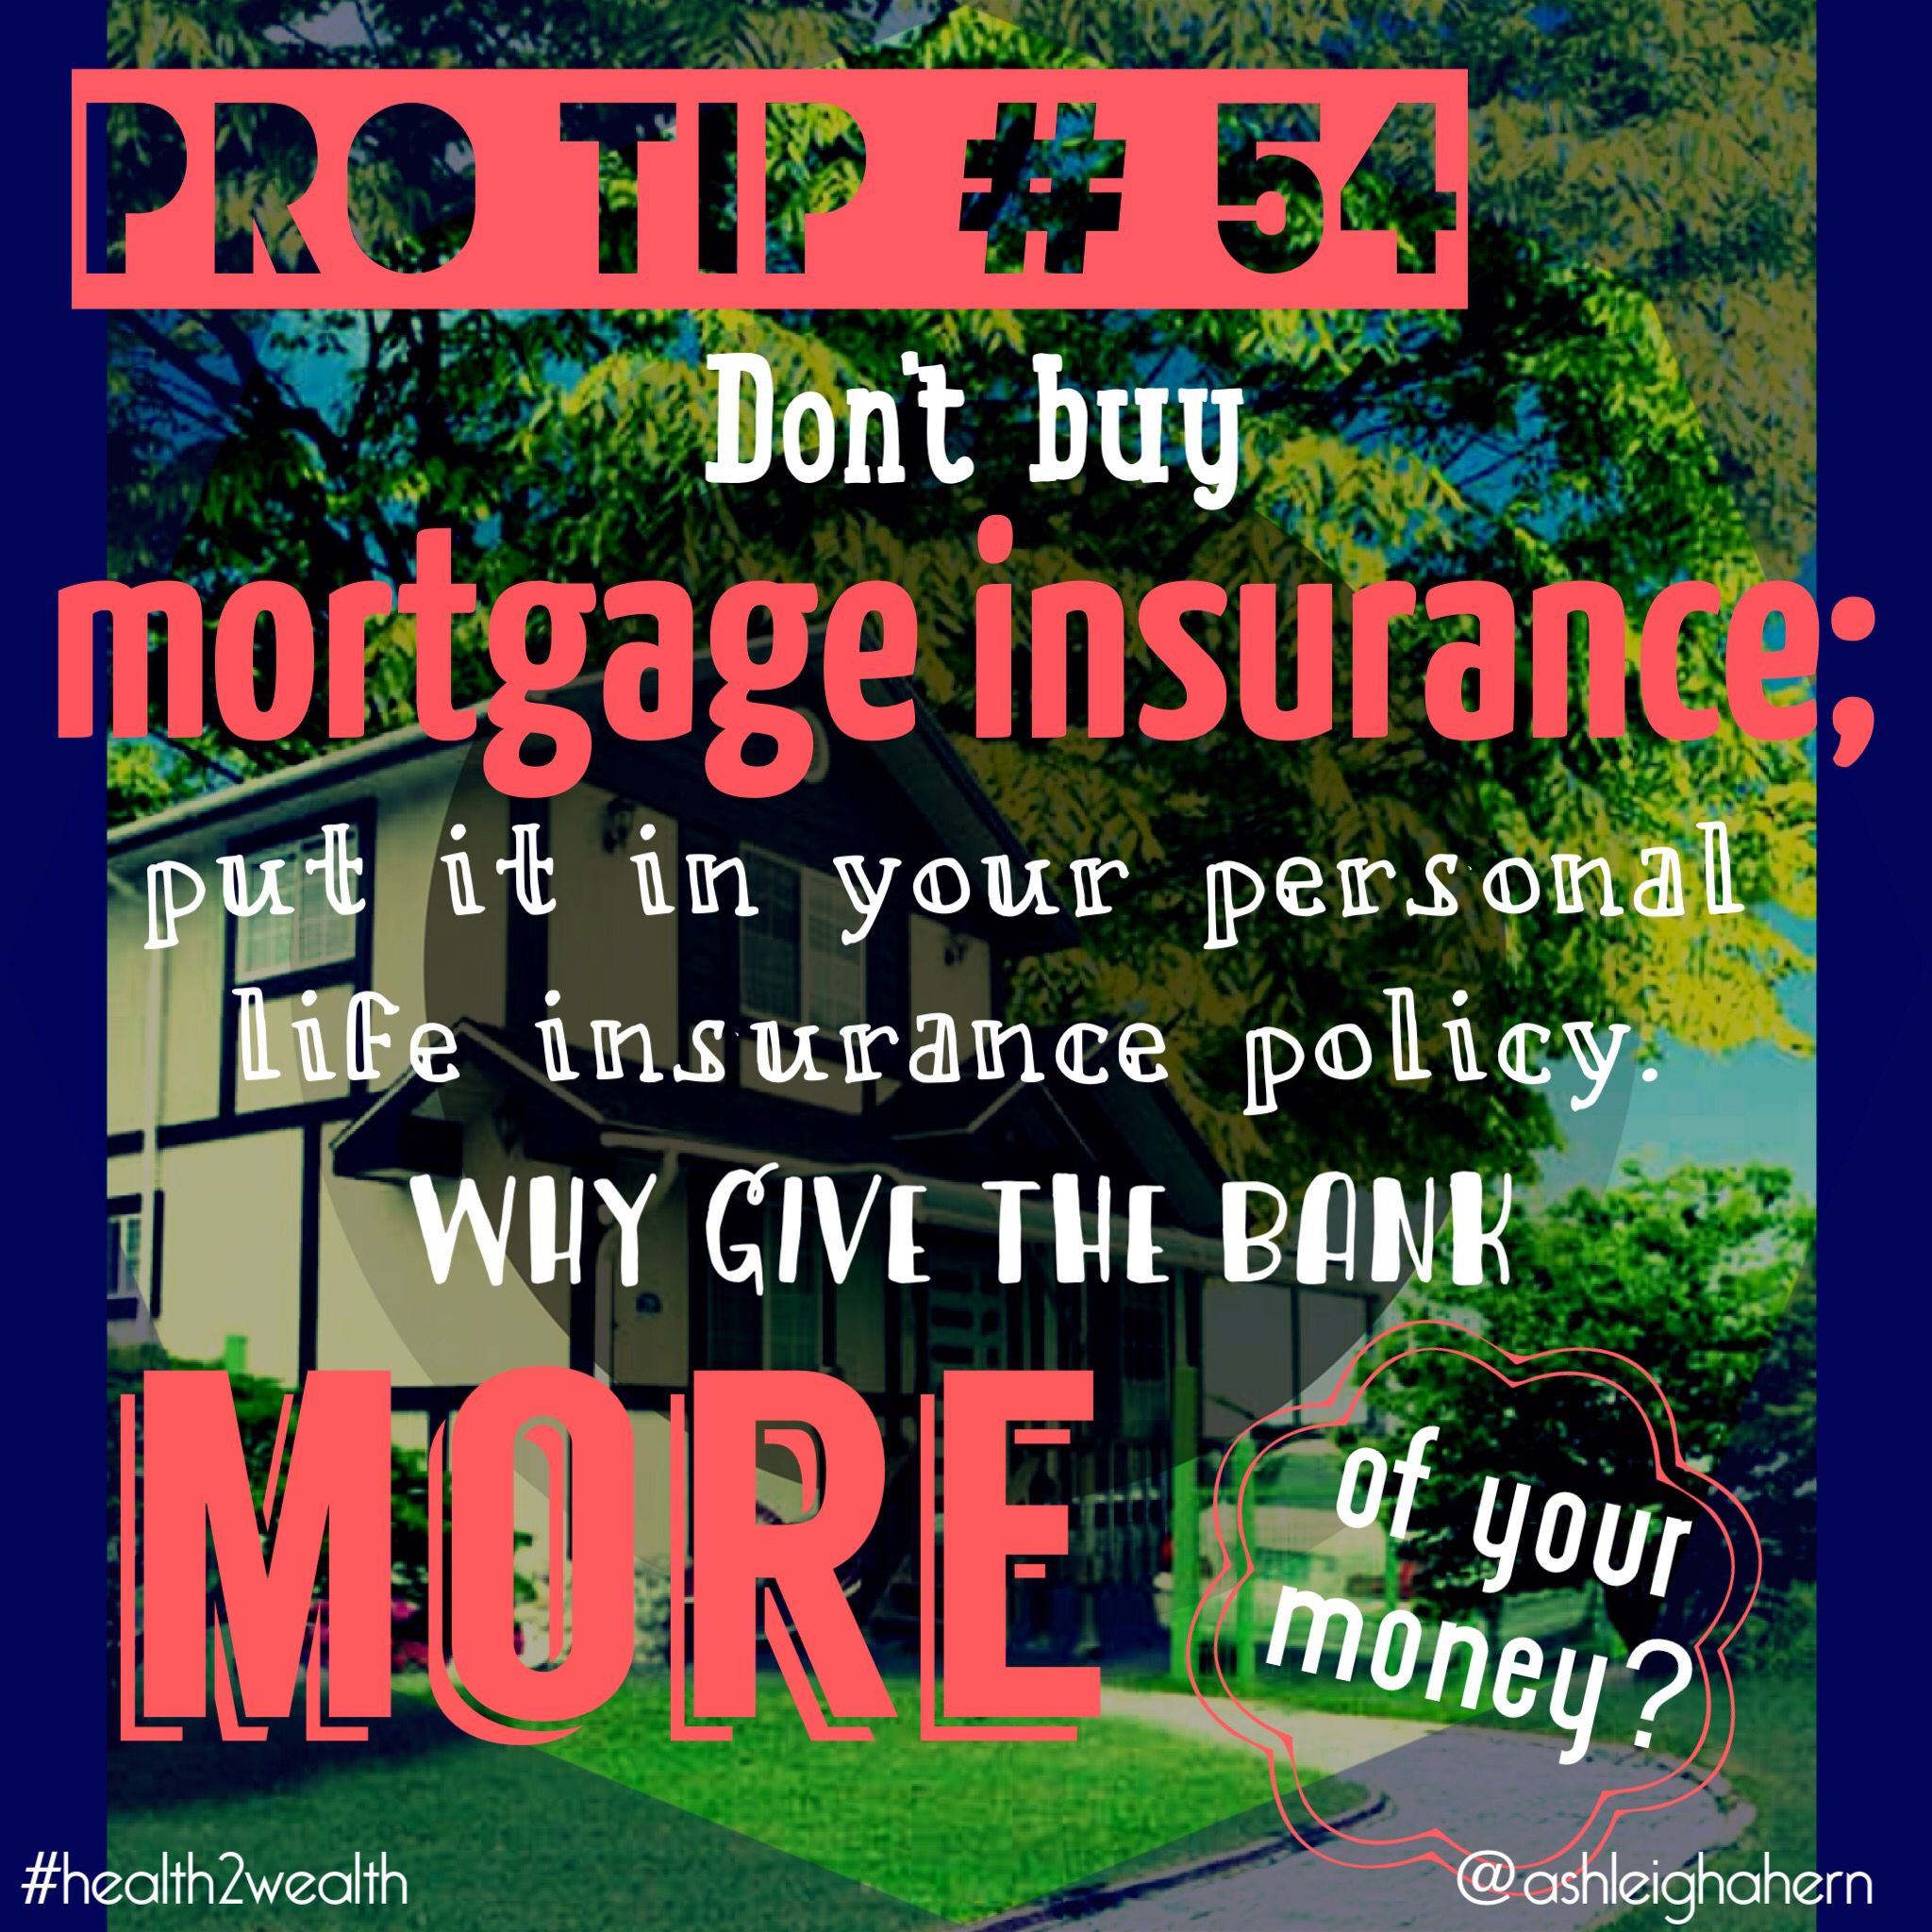 3 reasons not to buy mortgage insurance: 1) it's post ...